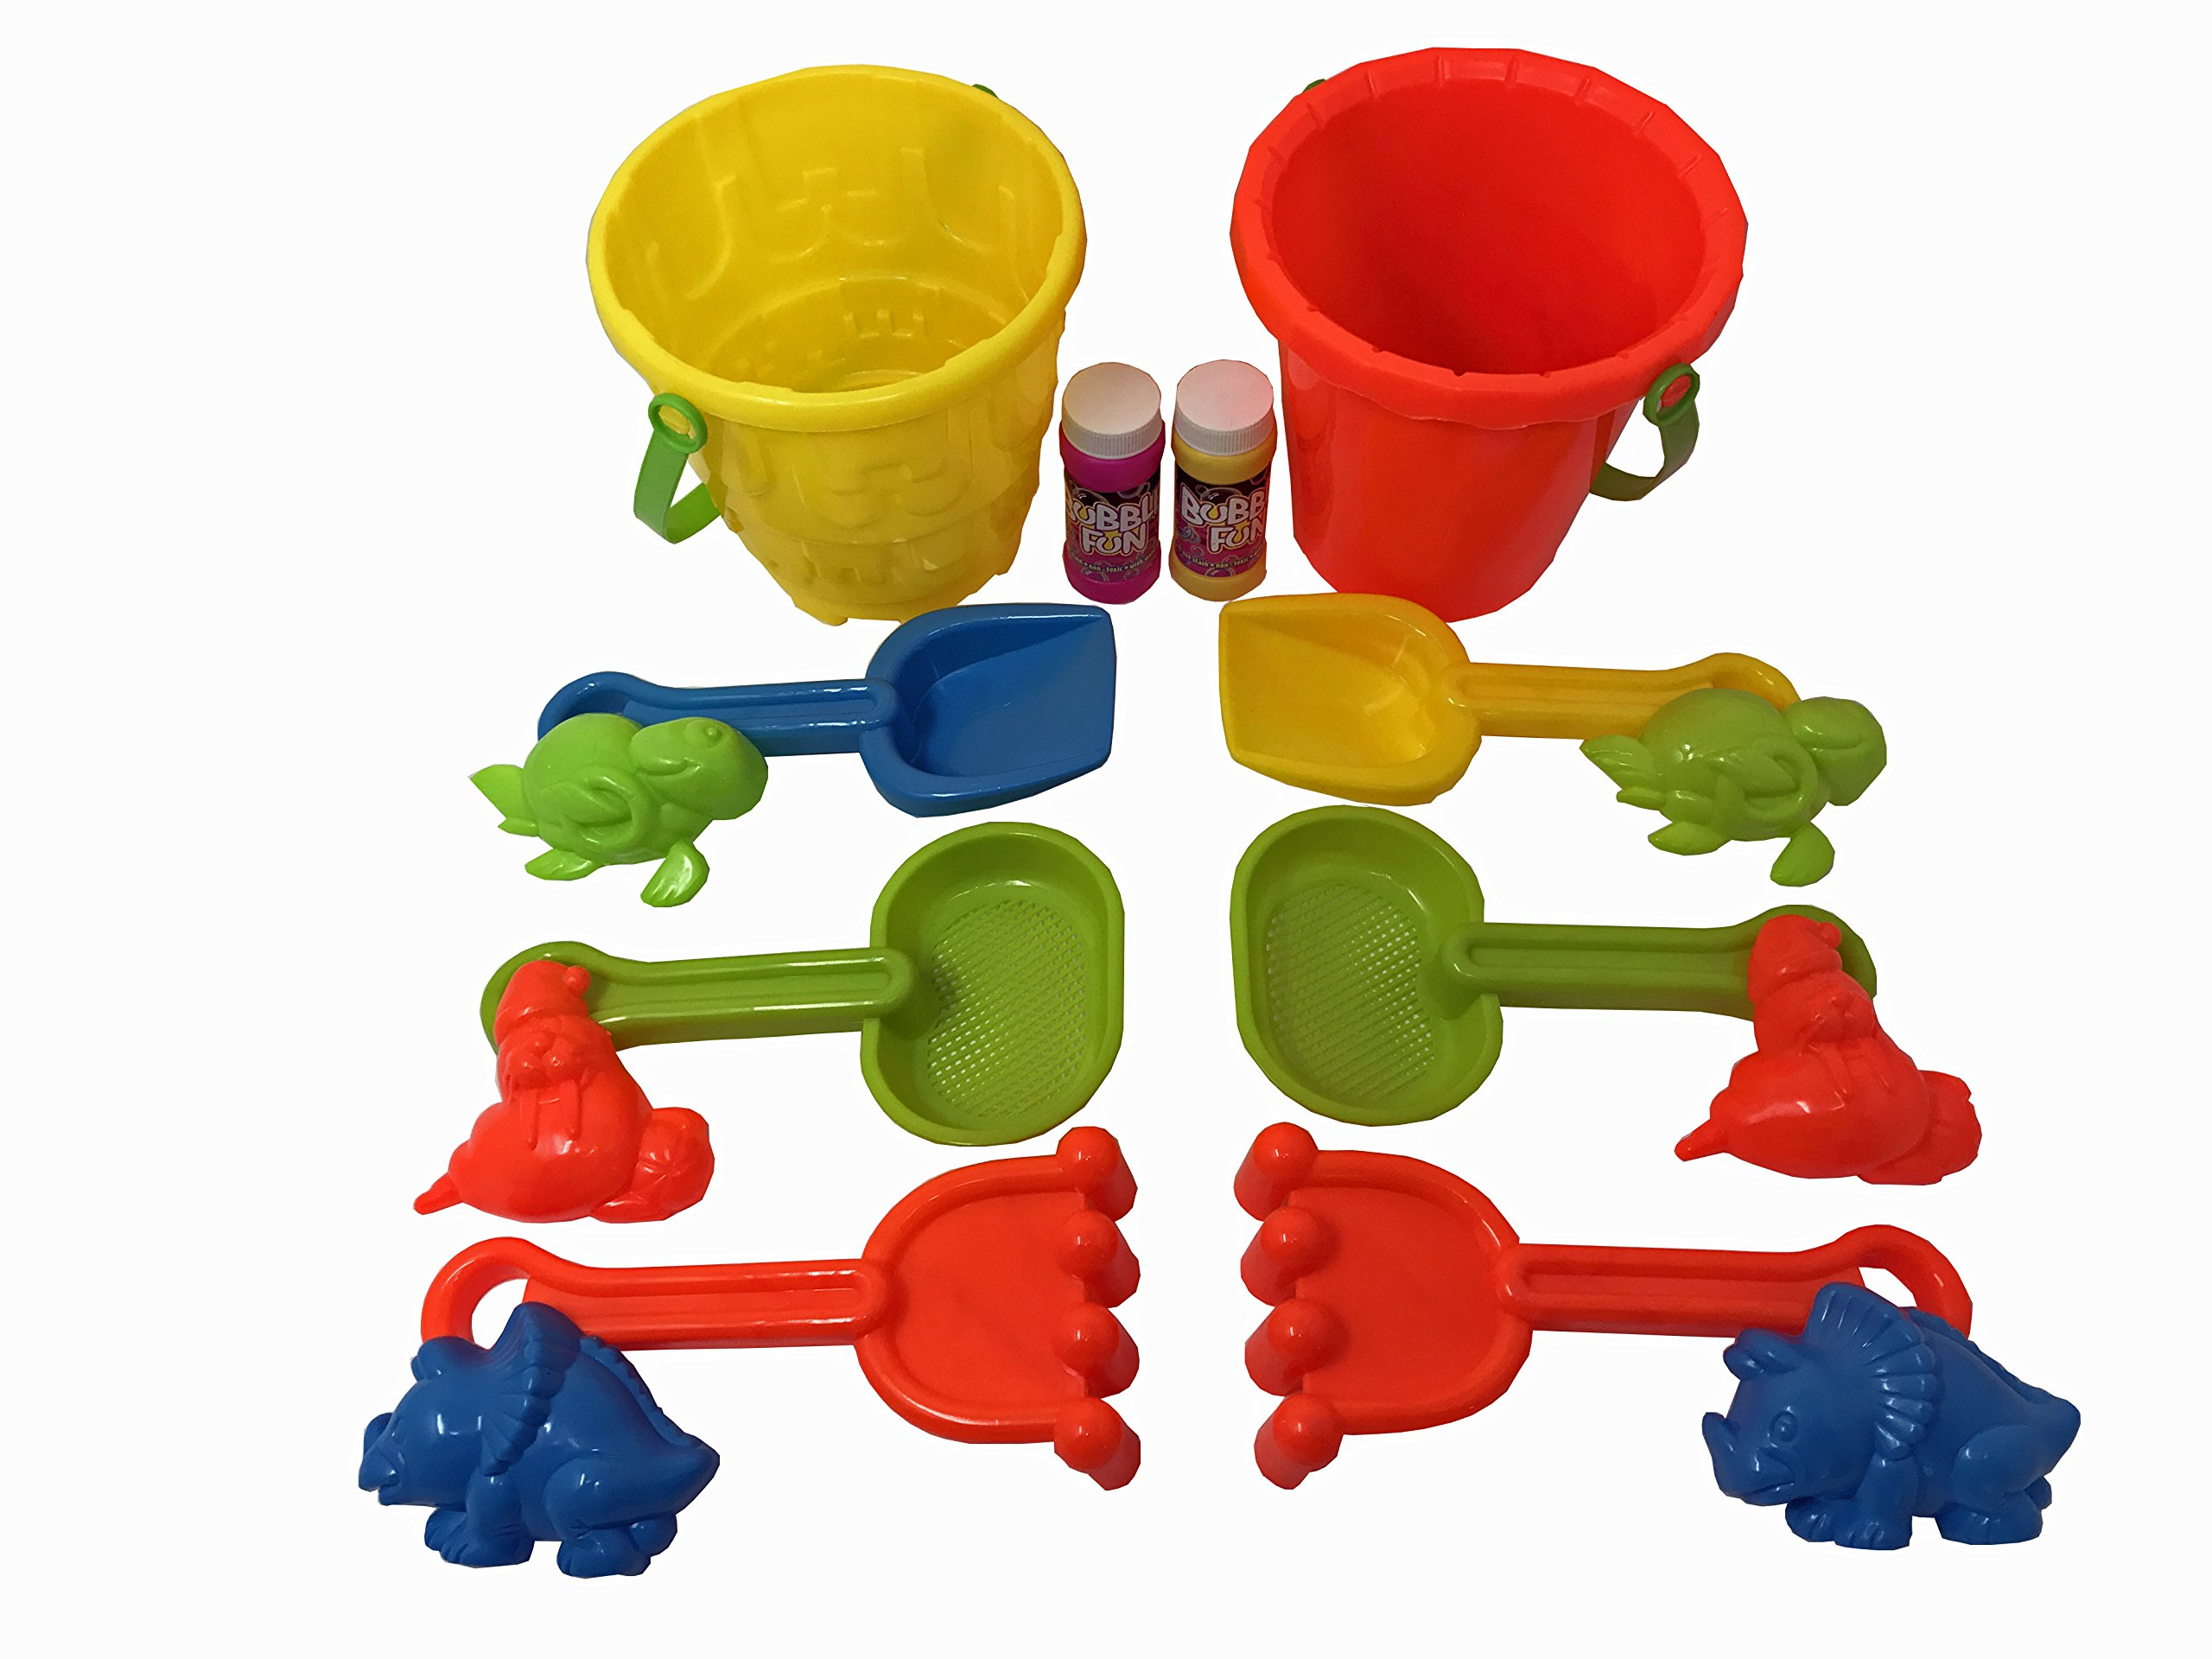 Happy Kidz Beach Bucket Toy Set | 6 Piece Bright Colorful Set (2 Sets) | 2 Buckets, 2 Assortment Pack of Sand Tools & Sand Animal Molds | PLUS FREE Gift!! - 2 Pack of Crazy Bubbles! | Have Fun!!